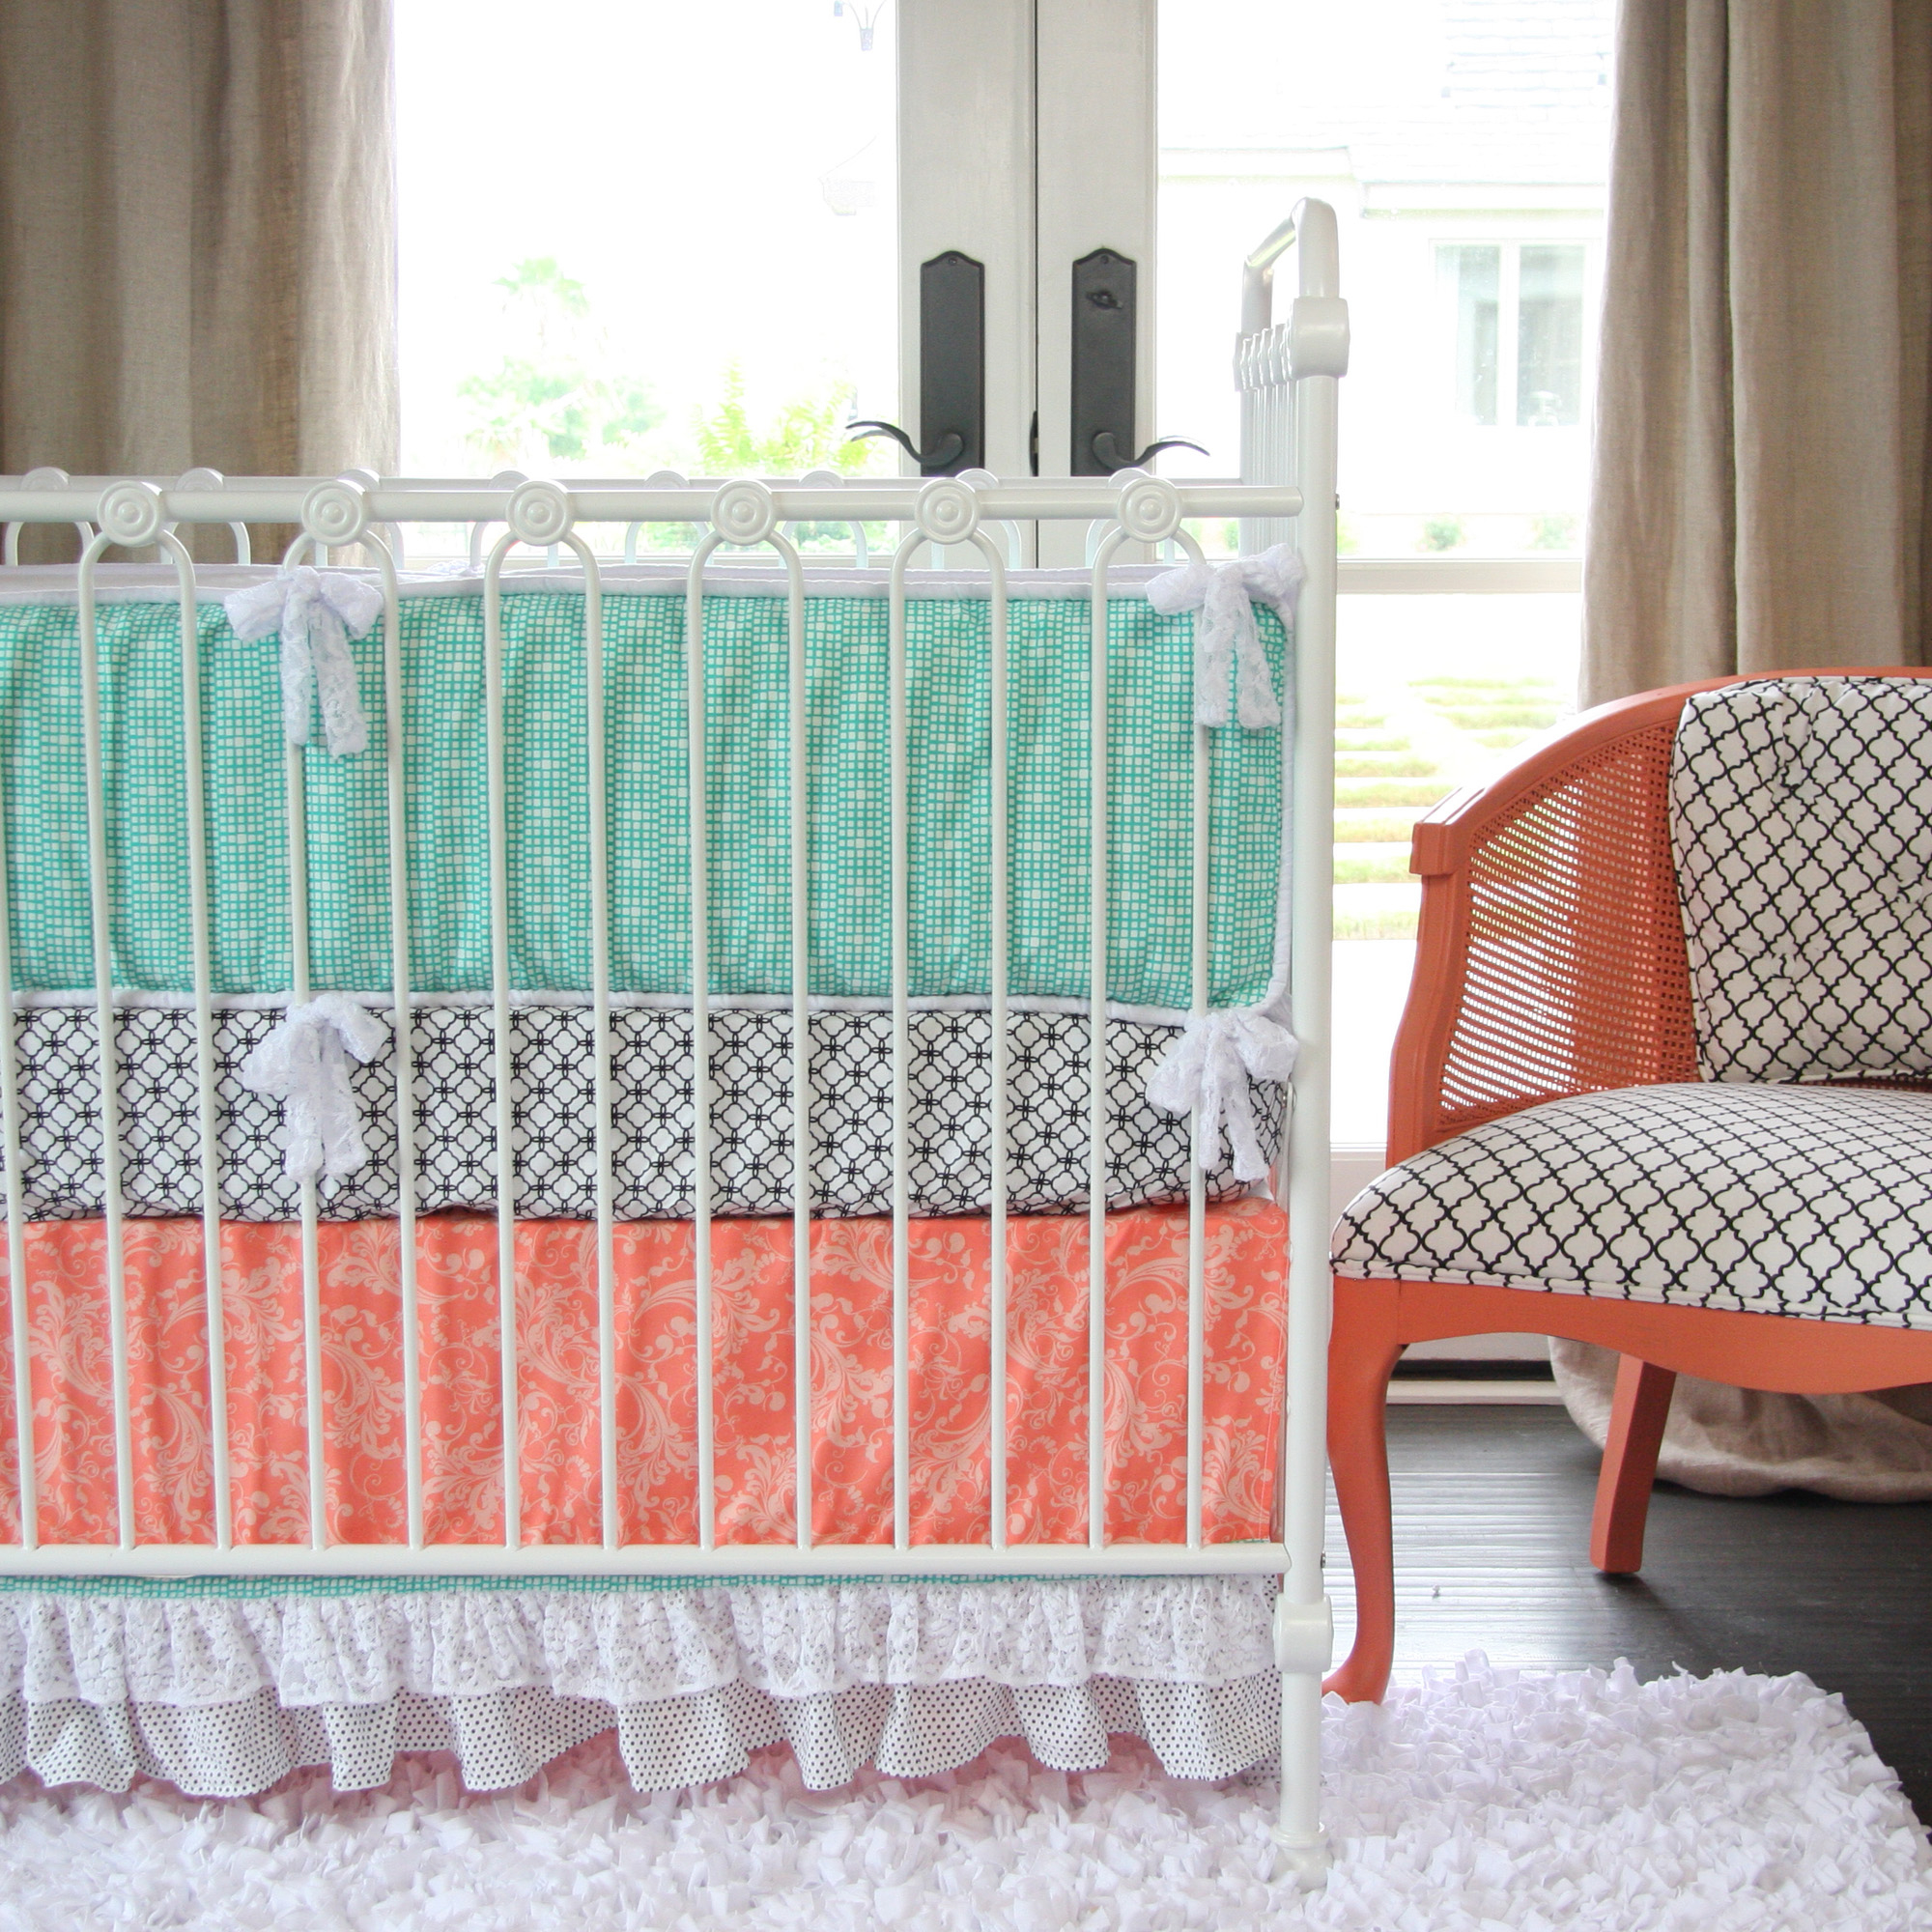 Kids Room Furniture Coral Baby Mod Crib Skirts Pair Perfectly With Blue Soft Nursery And White Metal Baby Rail Stylish Baby Mod Cribs (Image 26 of 28)